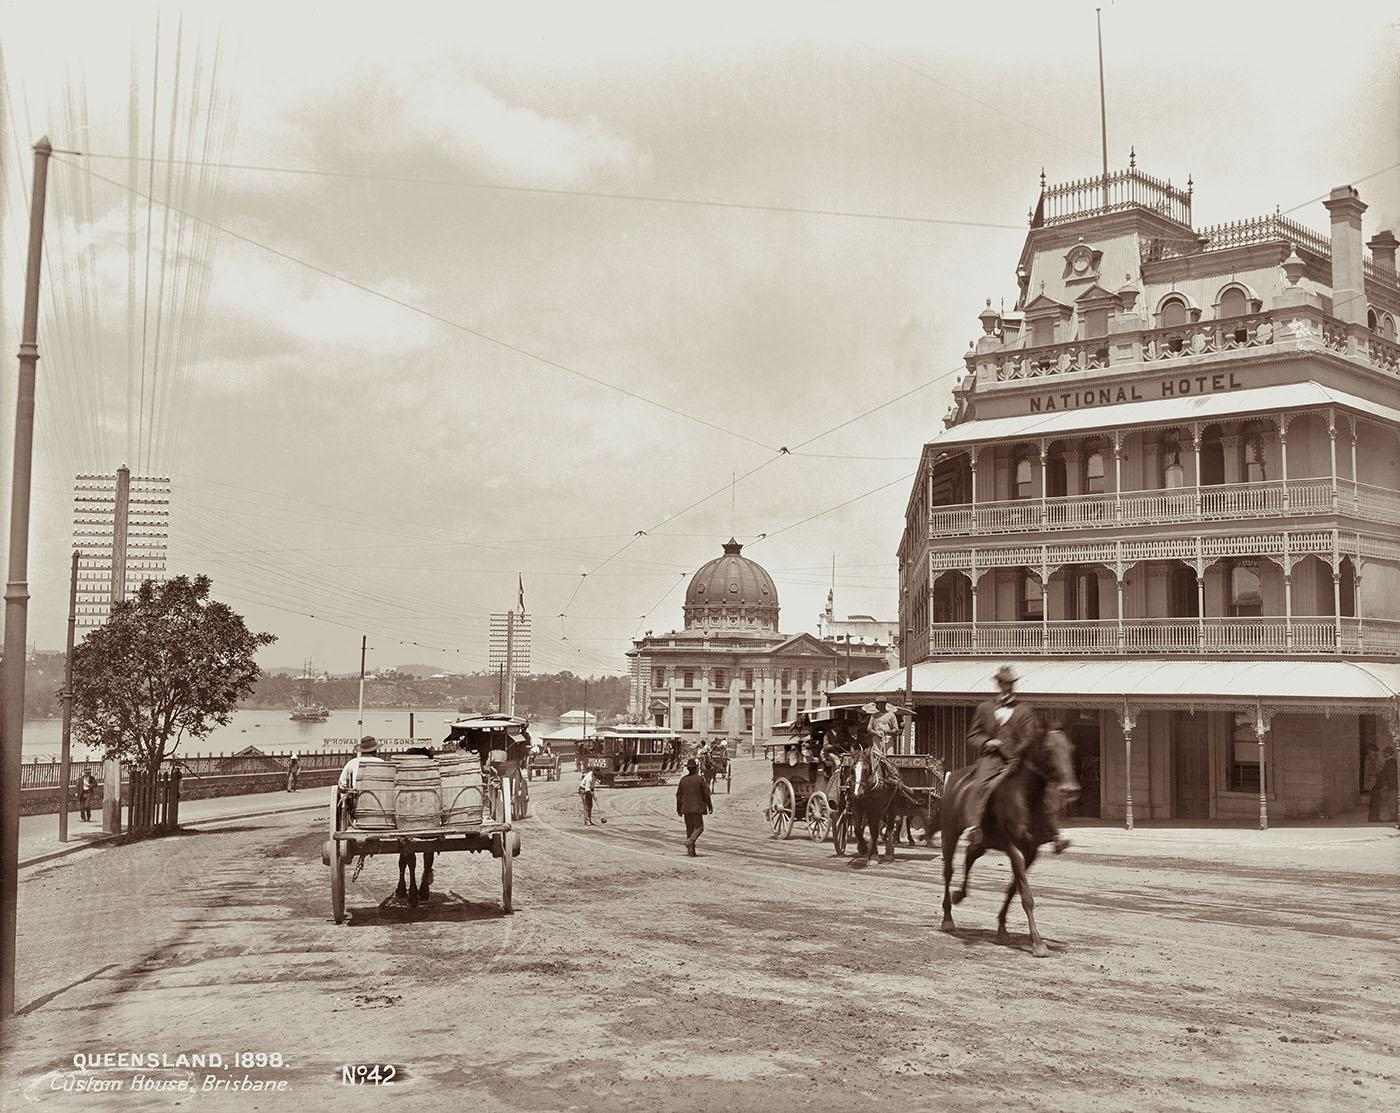 National Hotel at the corner of Queen Street and Adelaide Street, 1898